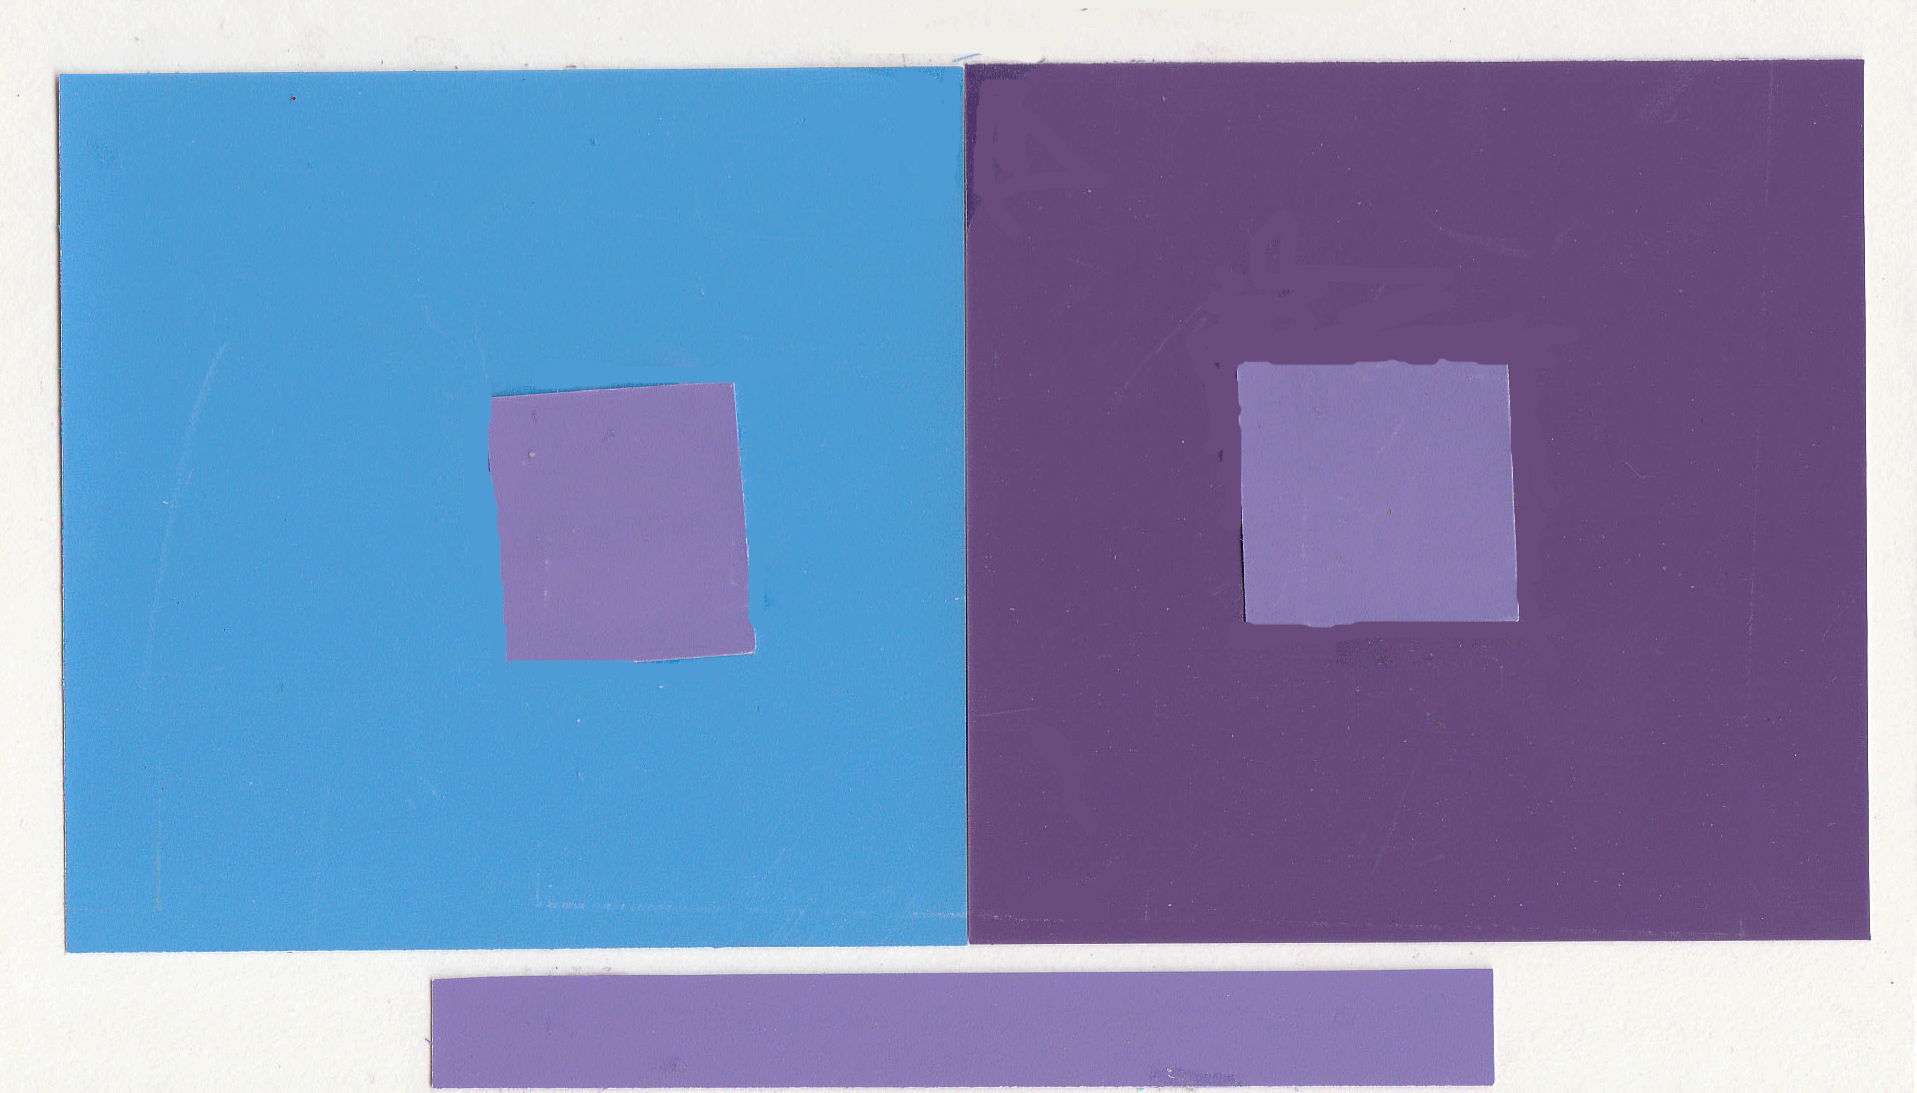 Albert Munsell, Josef Albers, Color Theory, Color Mixing